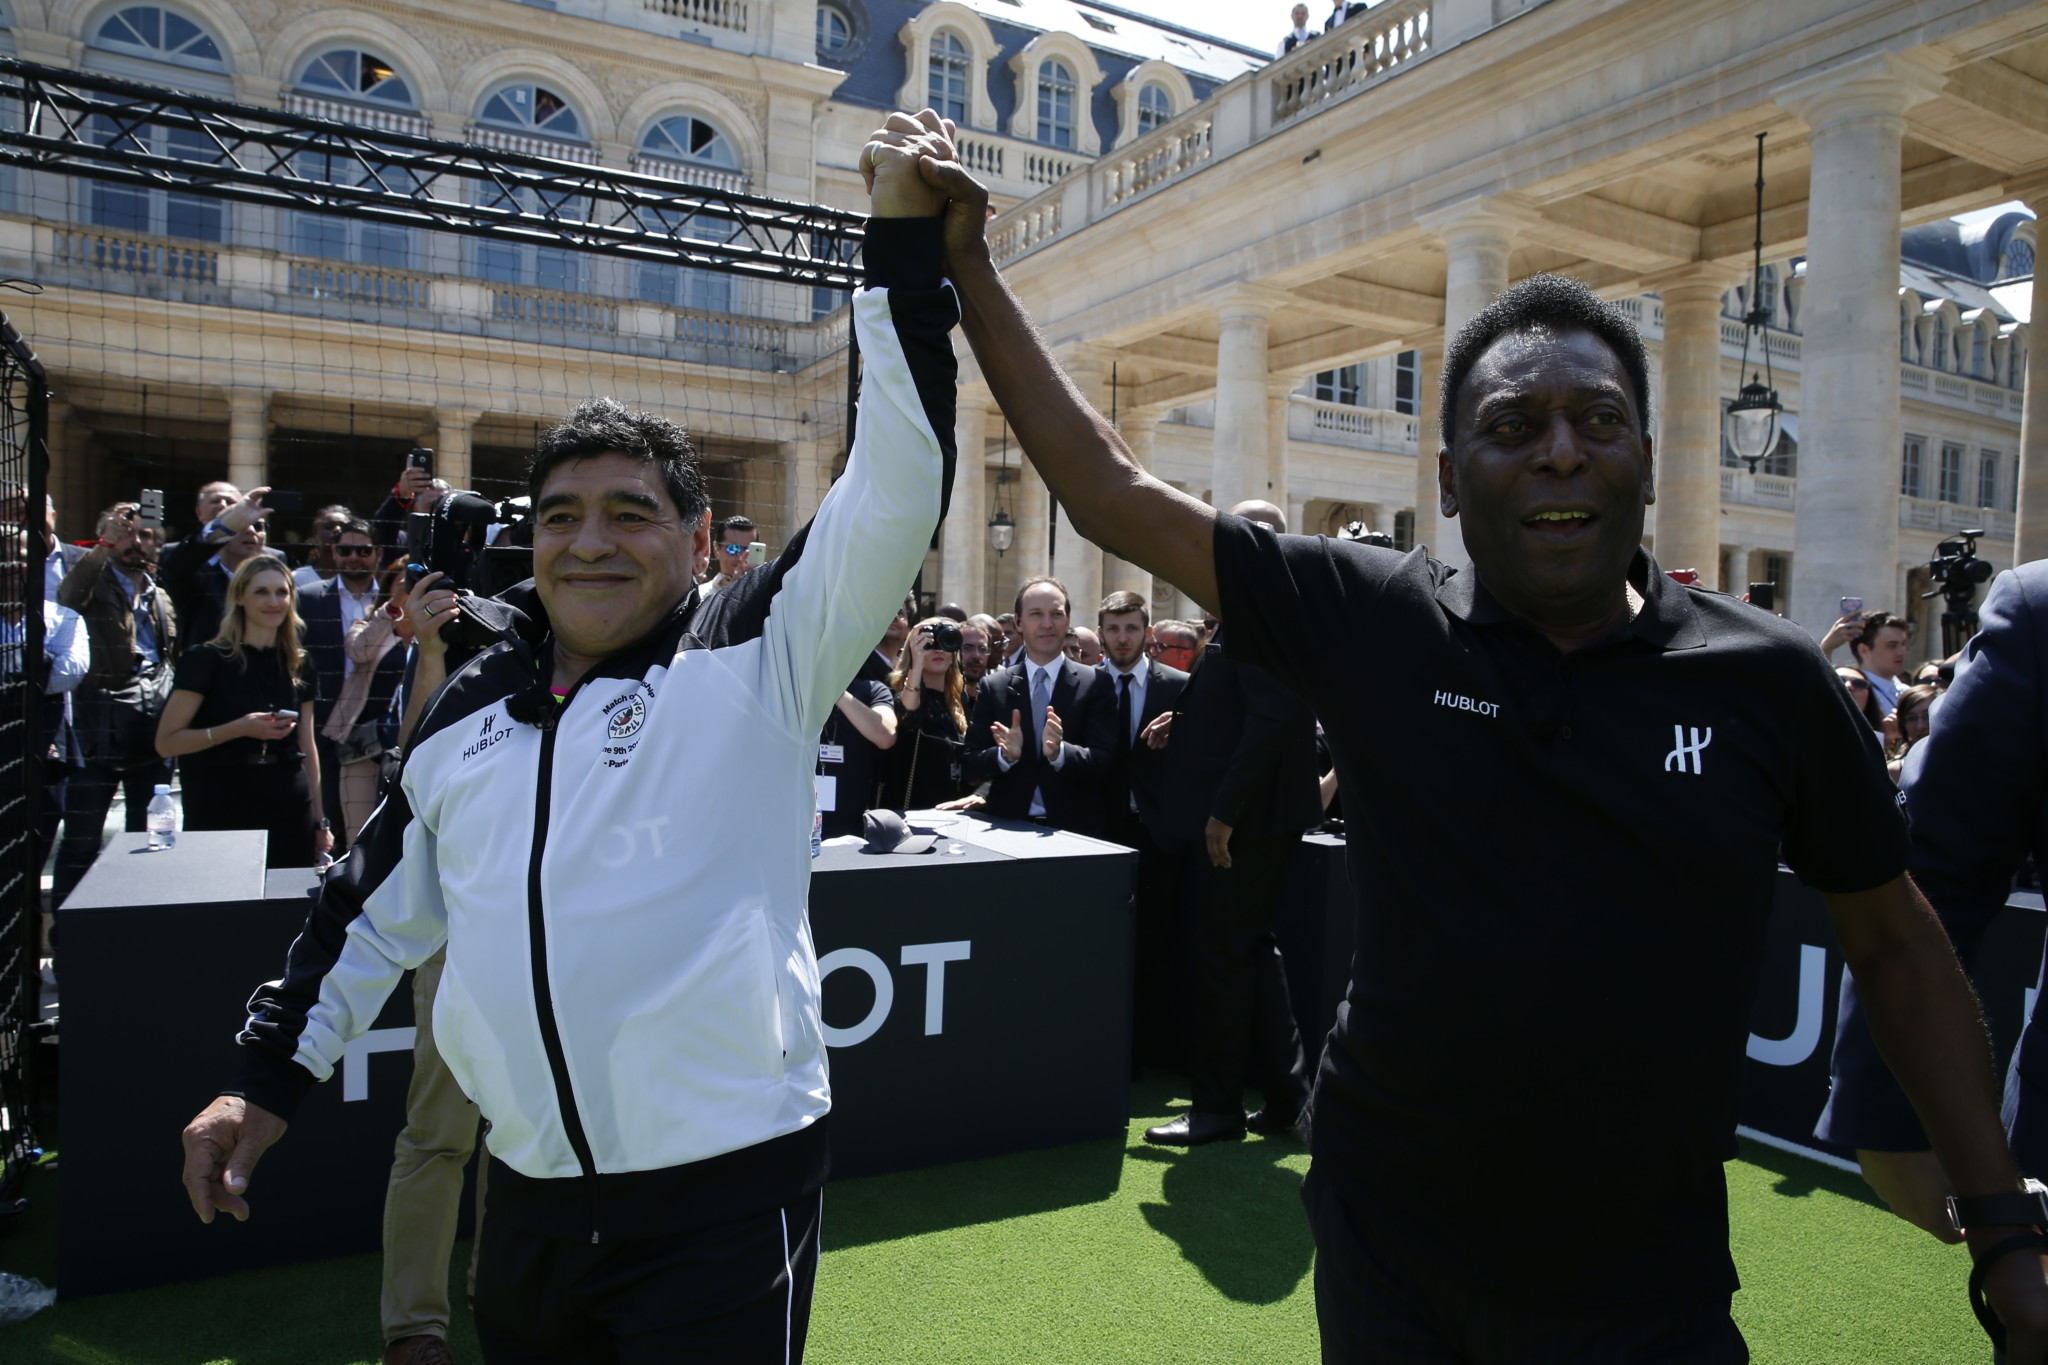 Hublot Creates Football History Again – Pelé and Maradona together for Once in a Lifetime Match!